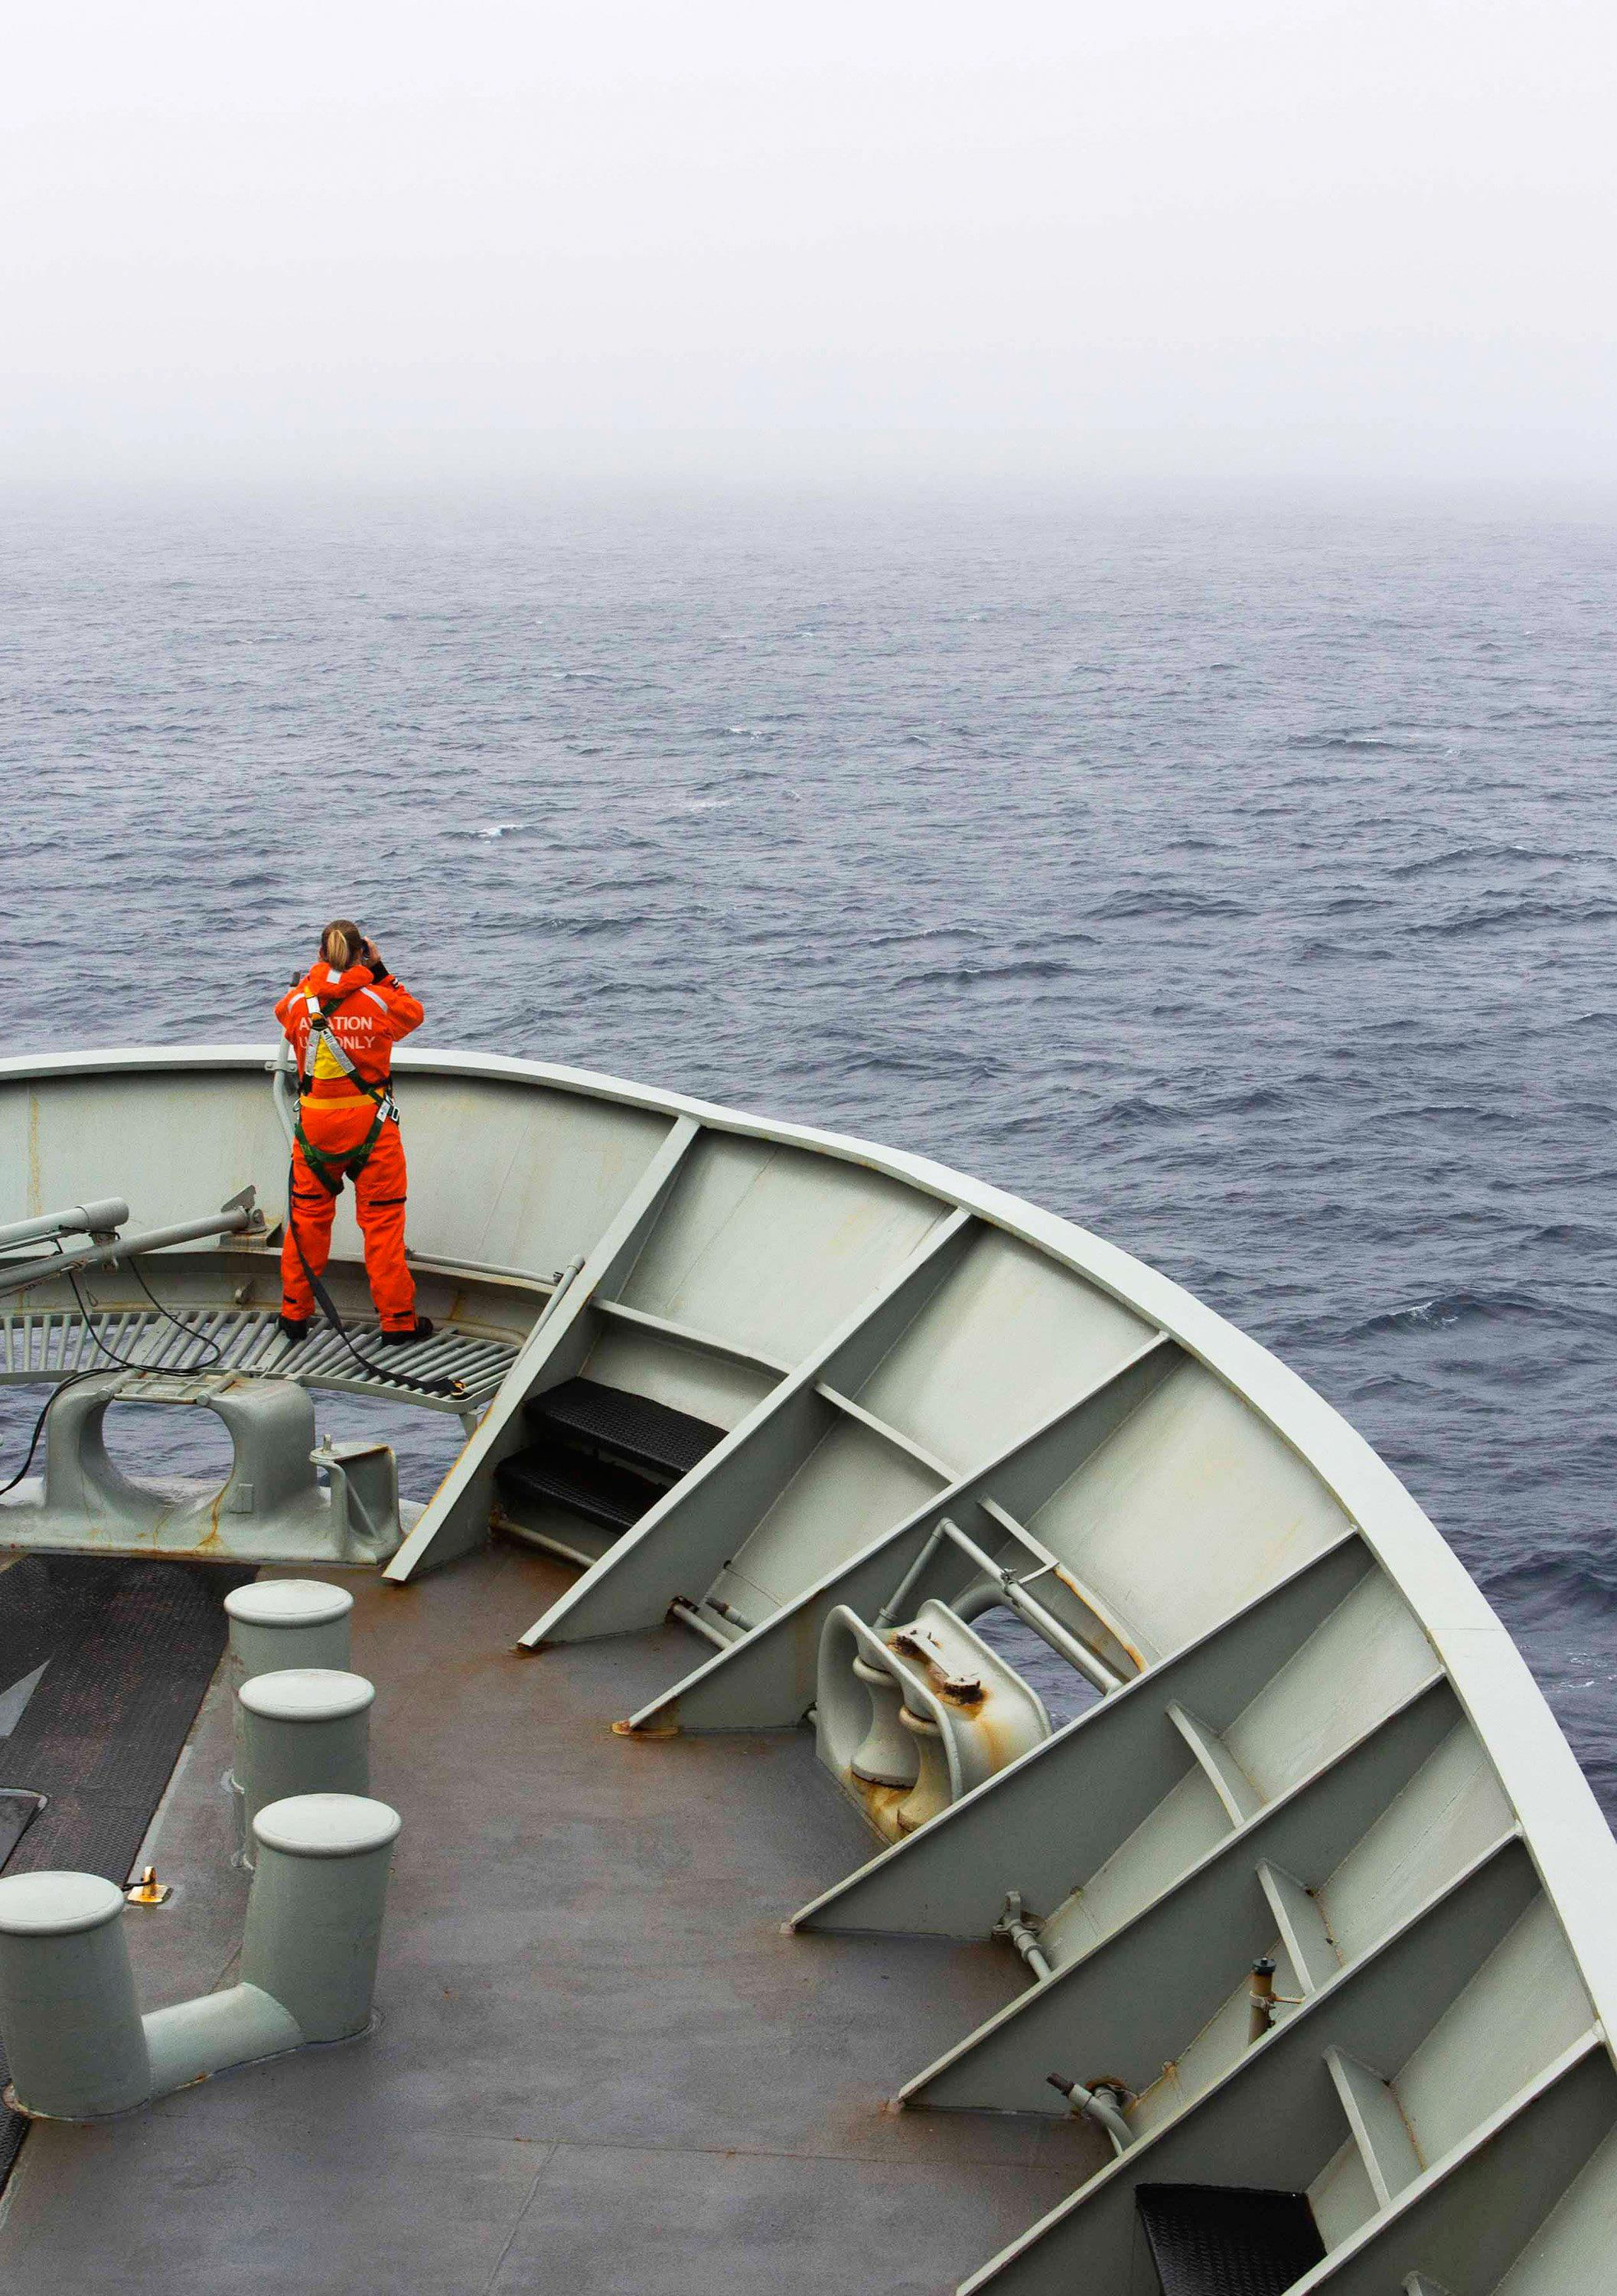 Image: A lookout is stationed on bow of HMAS Success during the search in the southern Indian Ocean for signs of the missing Malaysia Airlines Flight MH370.